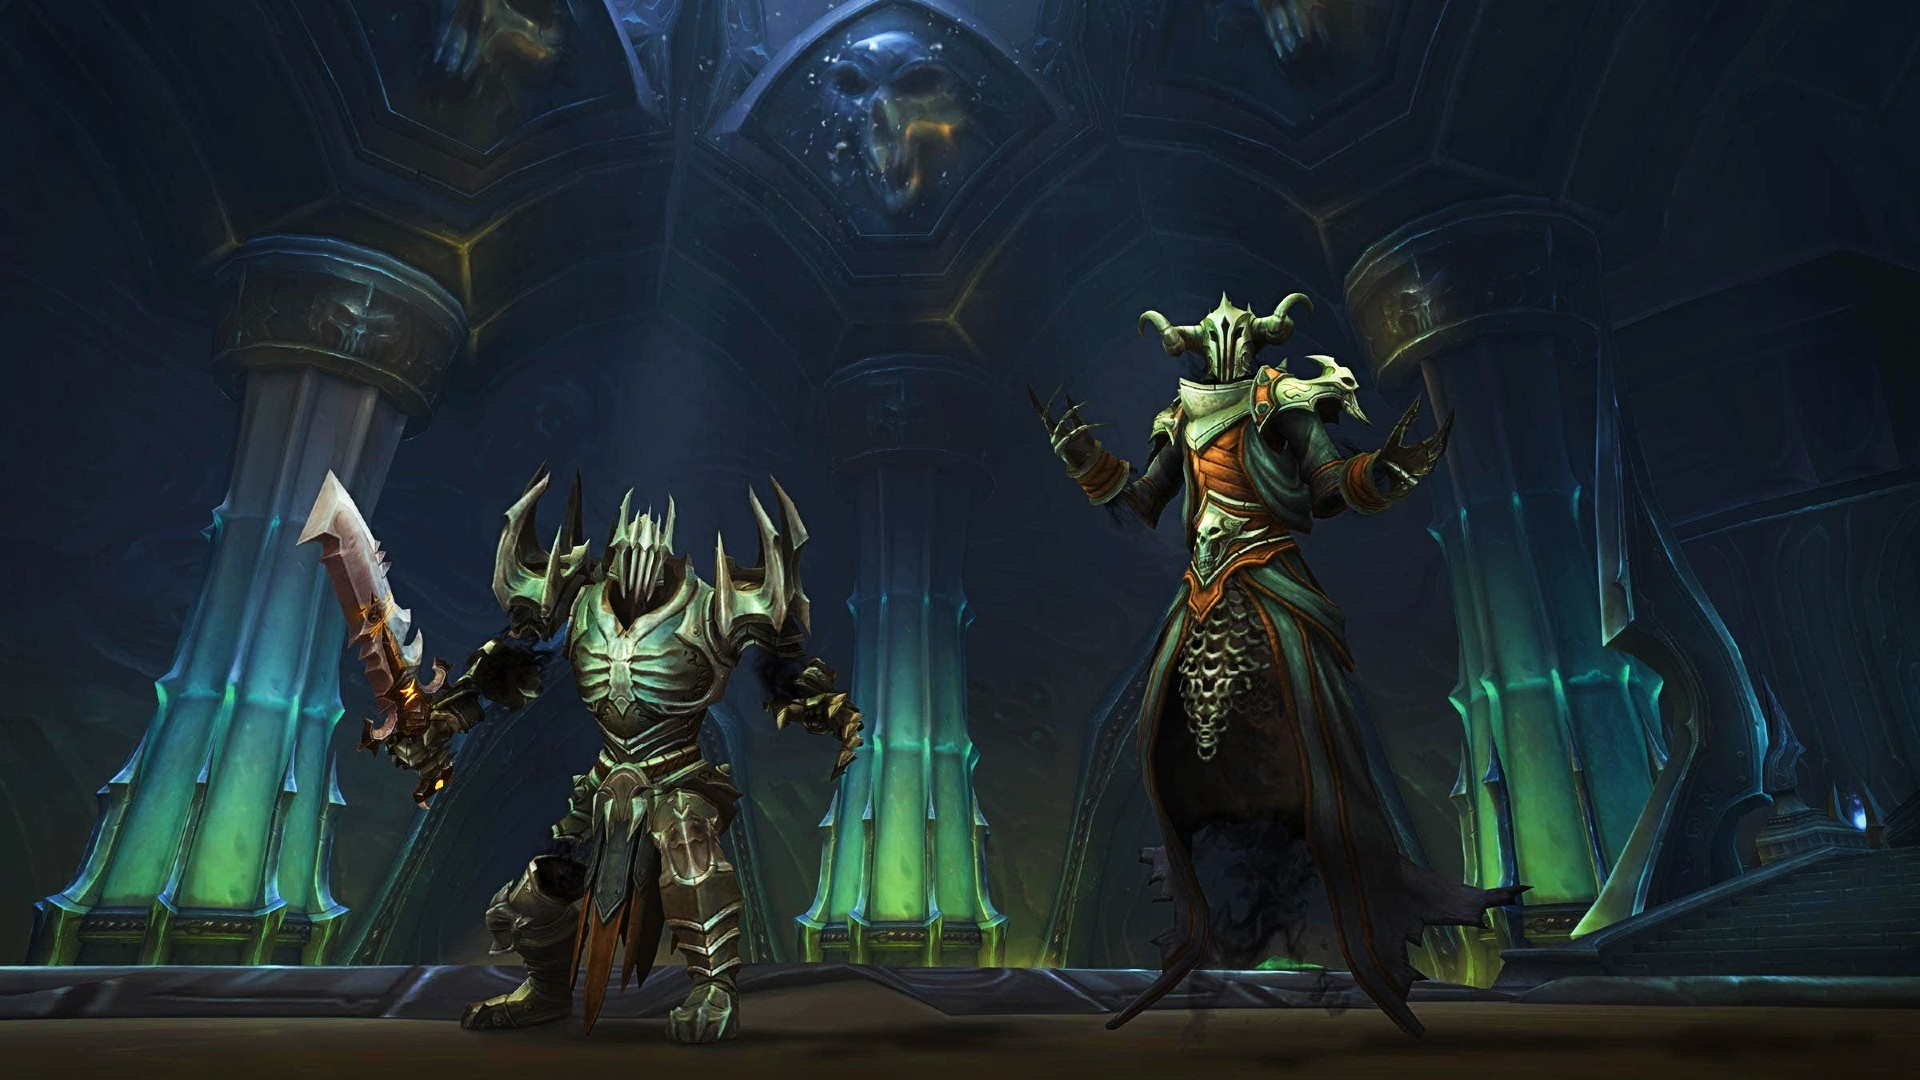 World of Warcraft player brings down Torghast boss while solo and naked